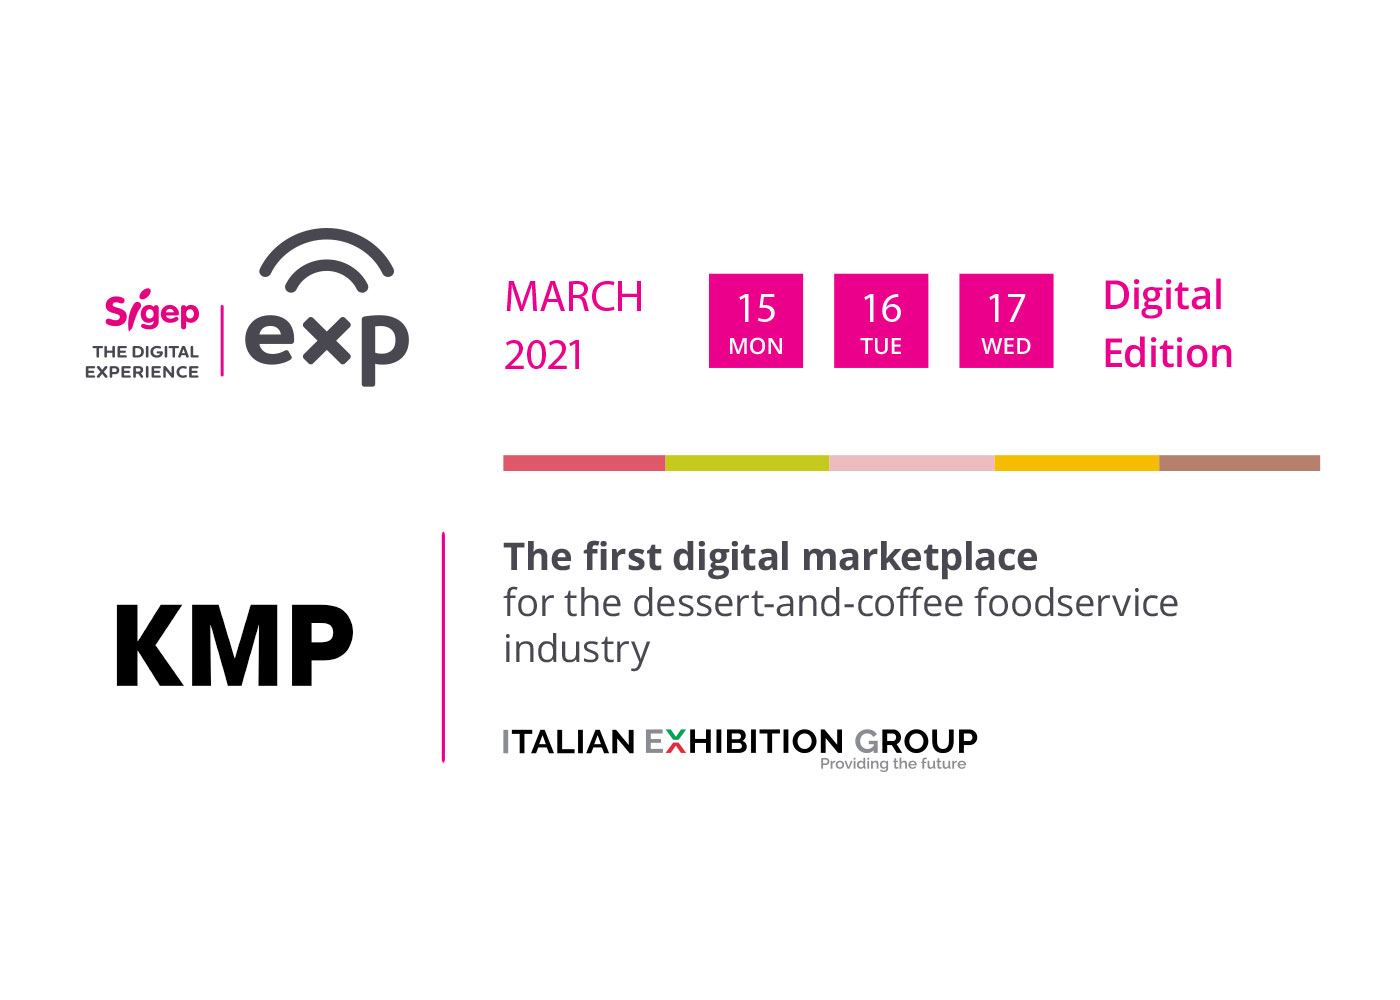 KMP is at Sigep Exp - The Digital Experience (15-17 March 2021)